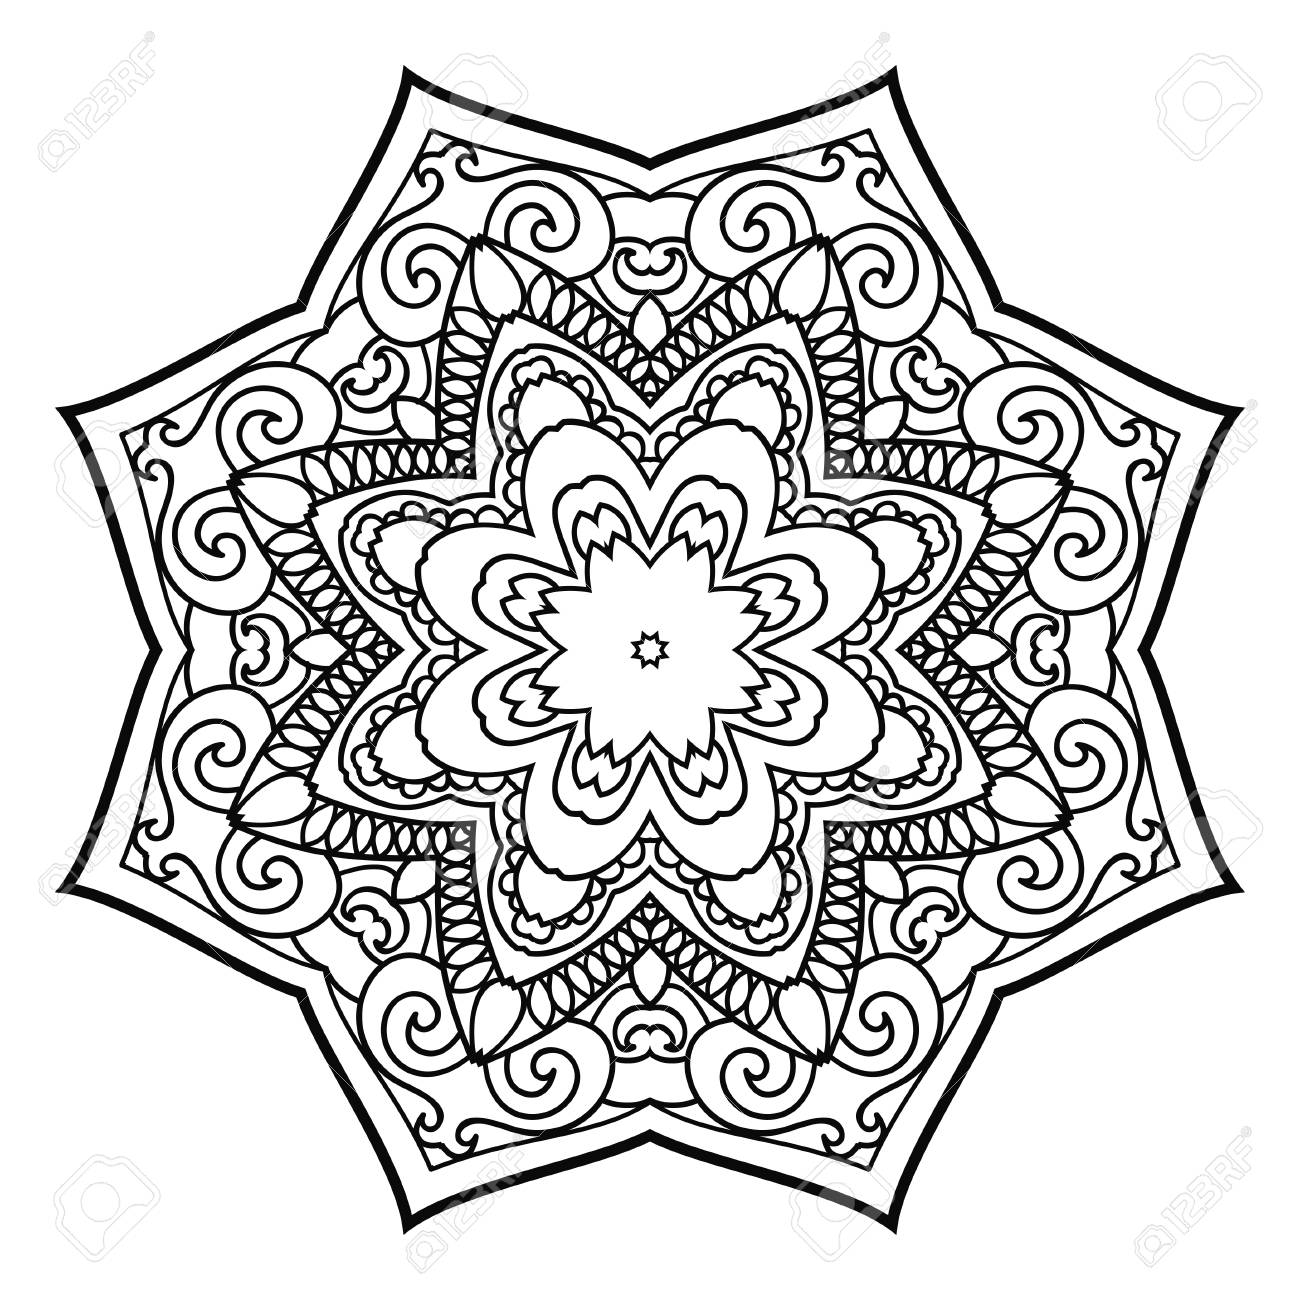 Mandala Hand Drawn Design Can Be Used Like Coloring Page Vintage